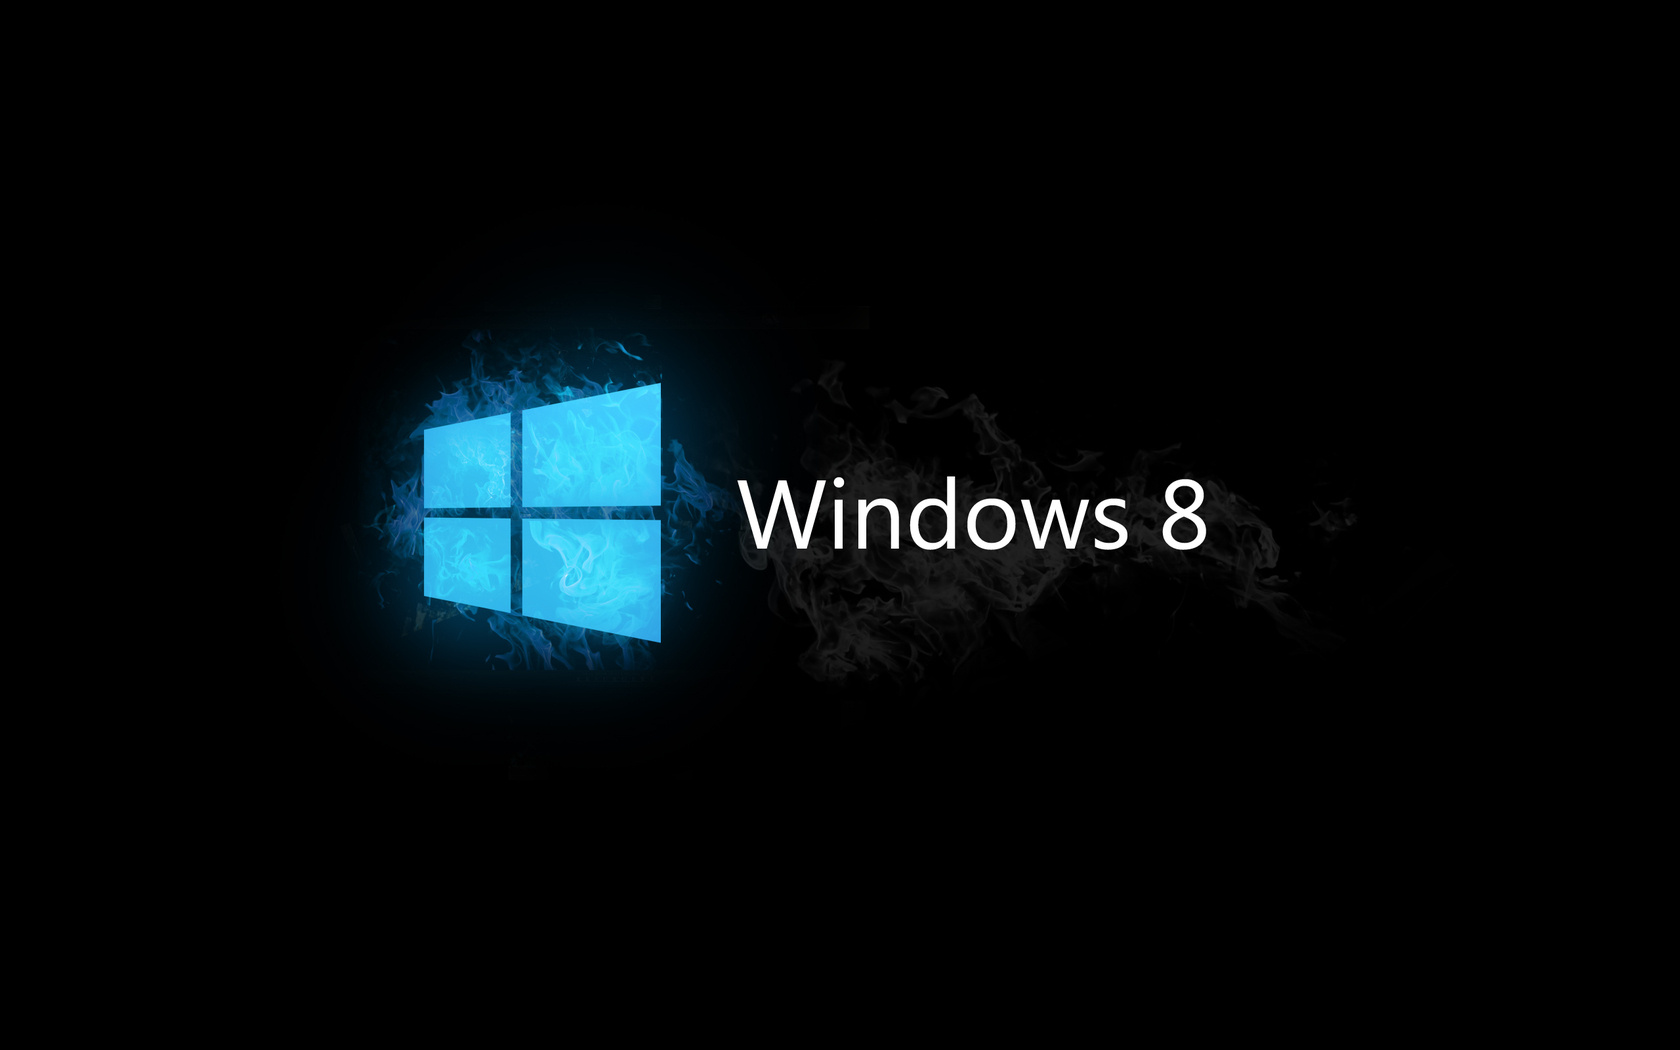 Windows 8 Wallpaper And Background Image